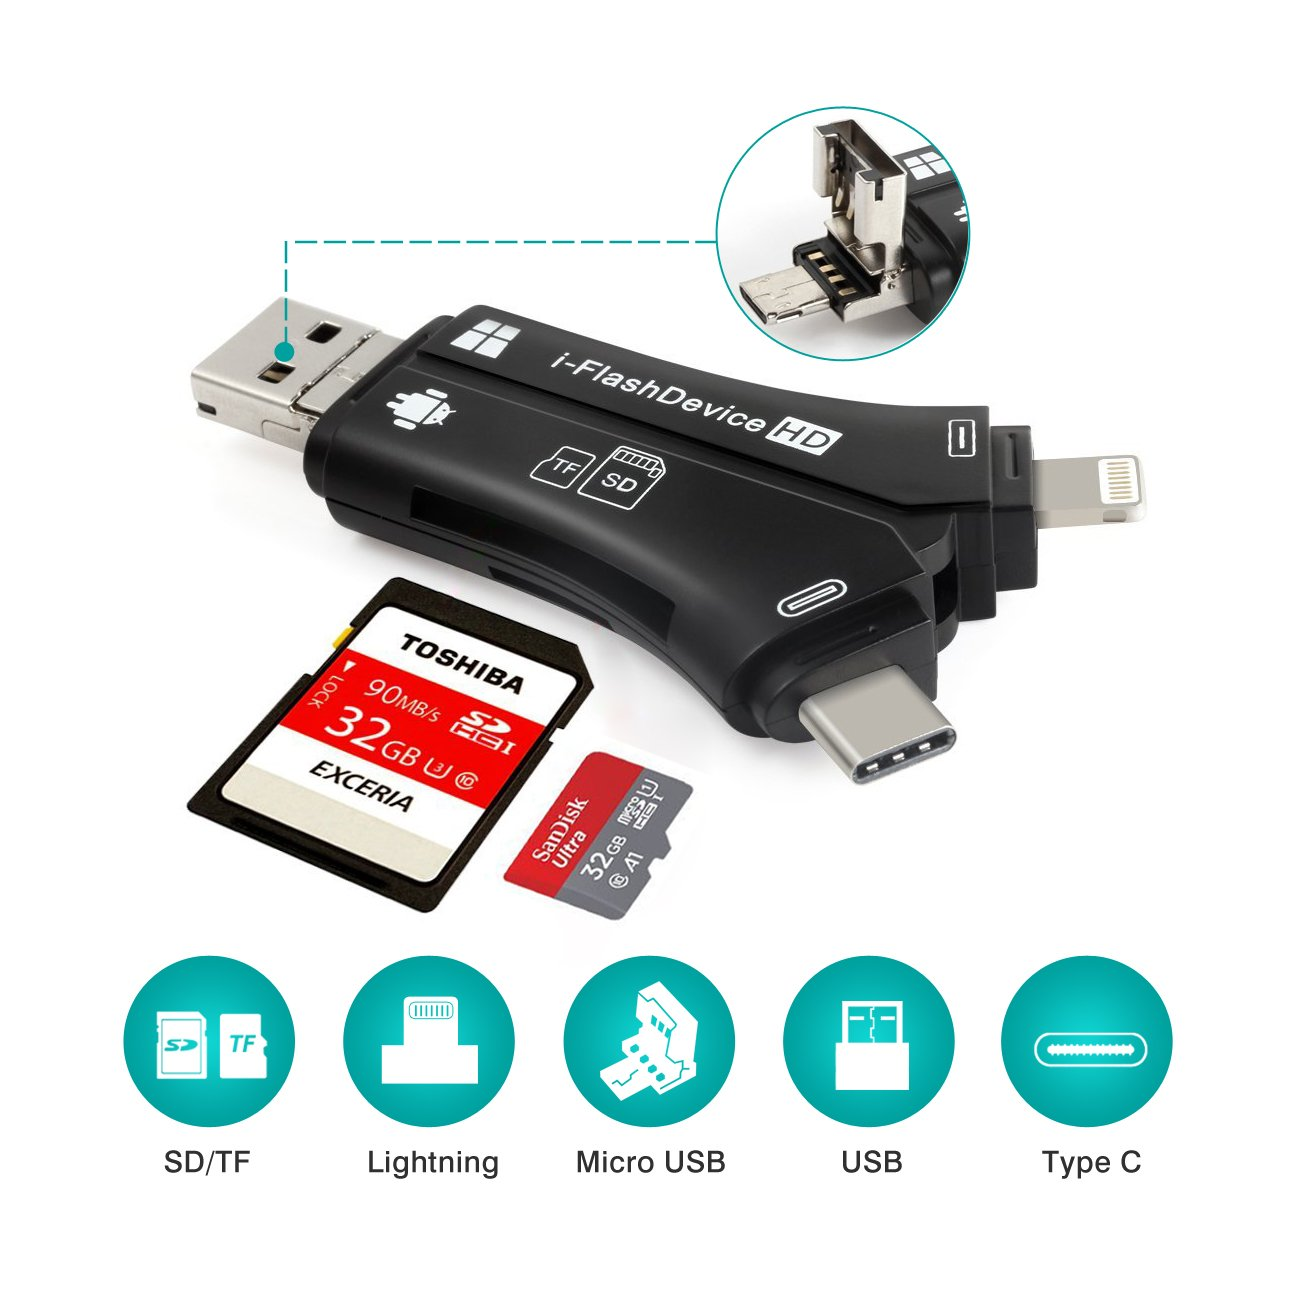 Card Reader, 4 in 1 SD Memory Card Adapter with Lightning, Type C, USB/Micro USB Connector, Micro SD Card Reader for iOS/Android/Type-C/Mac/PC